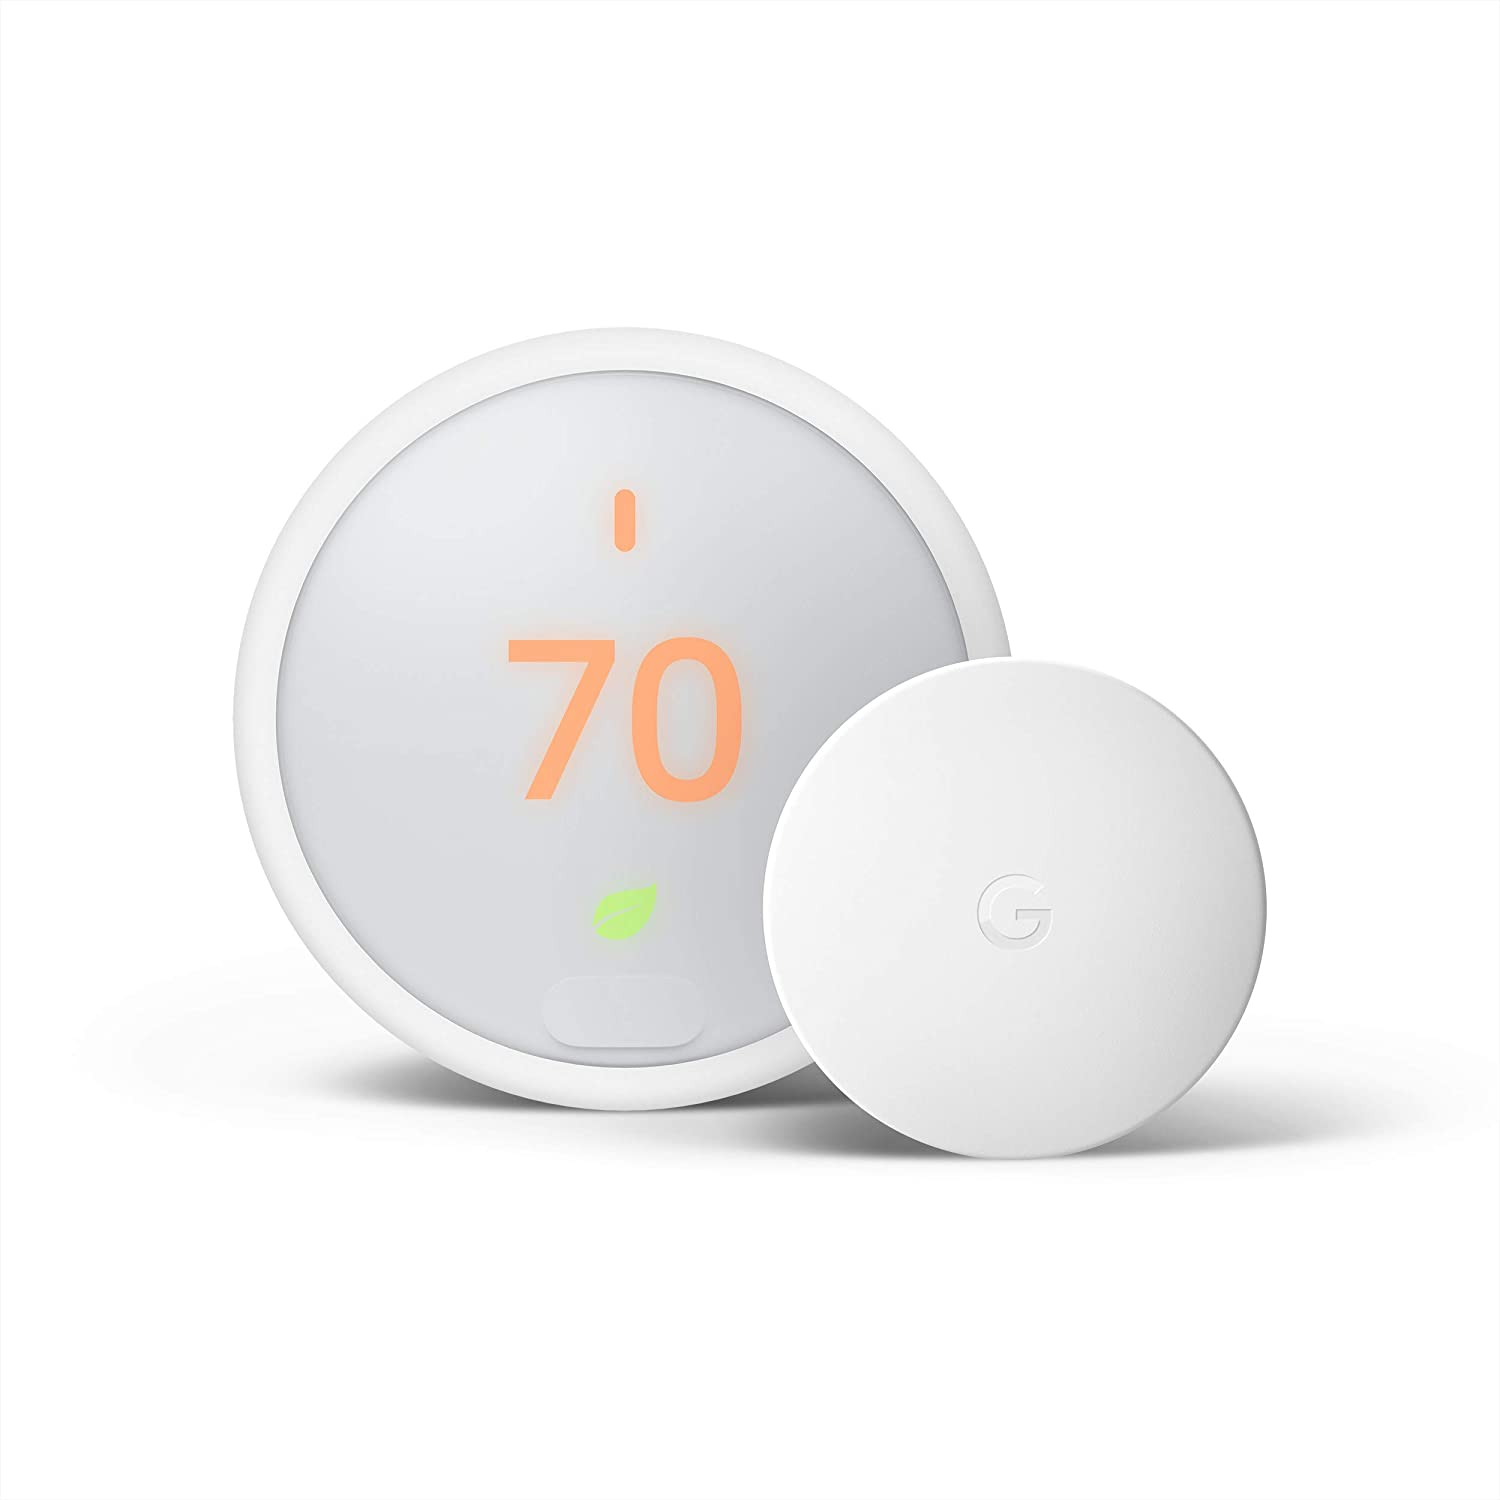 Google Nest Thermostat E - Smart Thermostat + Google Nest Temperature Sensor Bundle - White